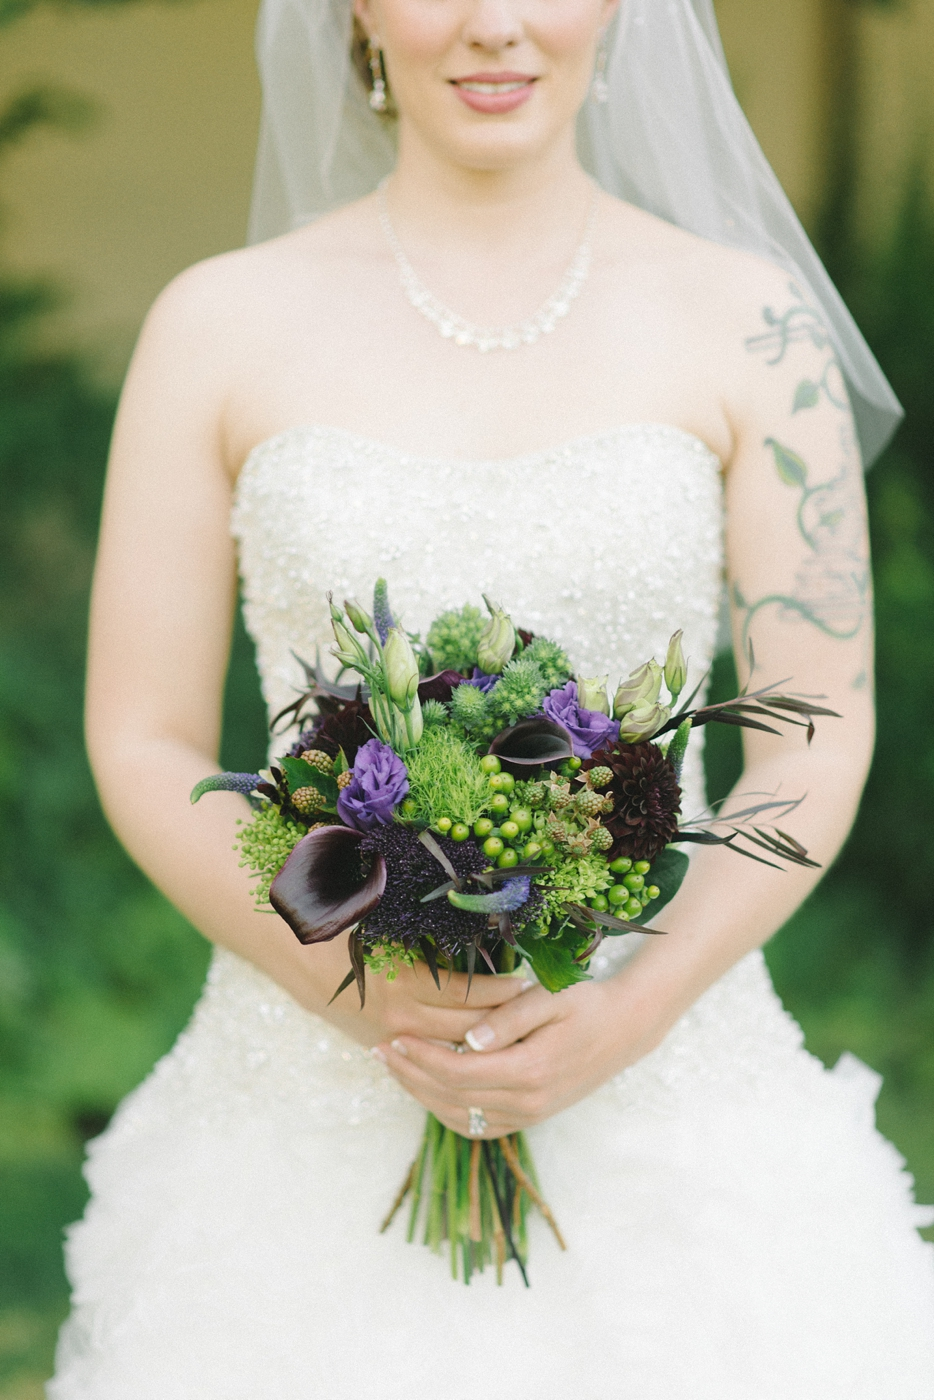 bouquet-portland-oregon-wedding-photographer-mcmenamins-edgefield-natural-bride-portrait-romantic-kiss-shelley-marie-photo-16